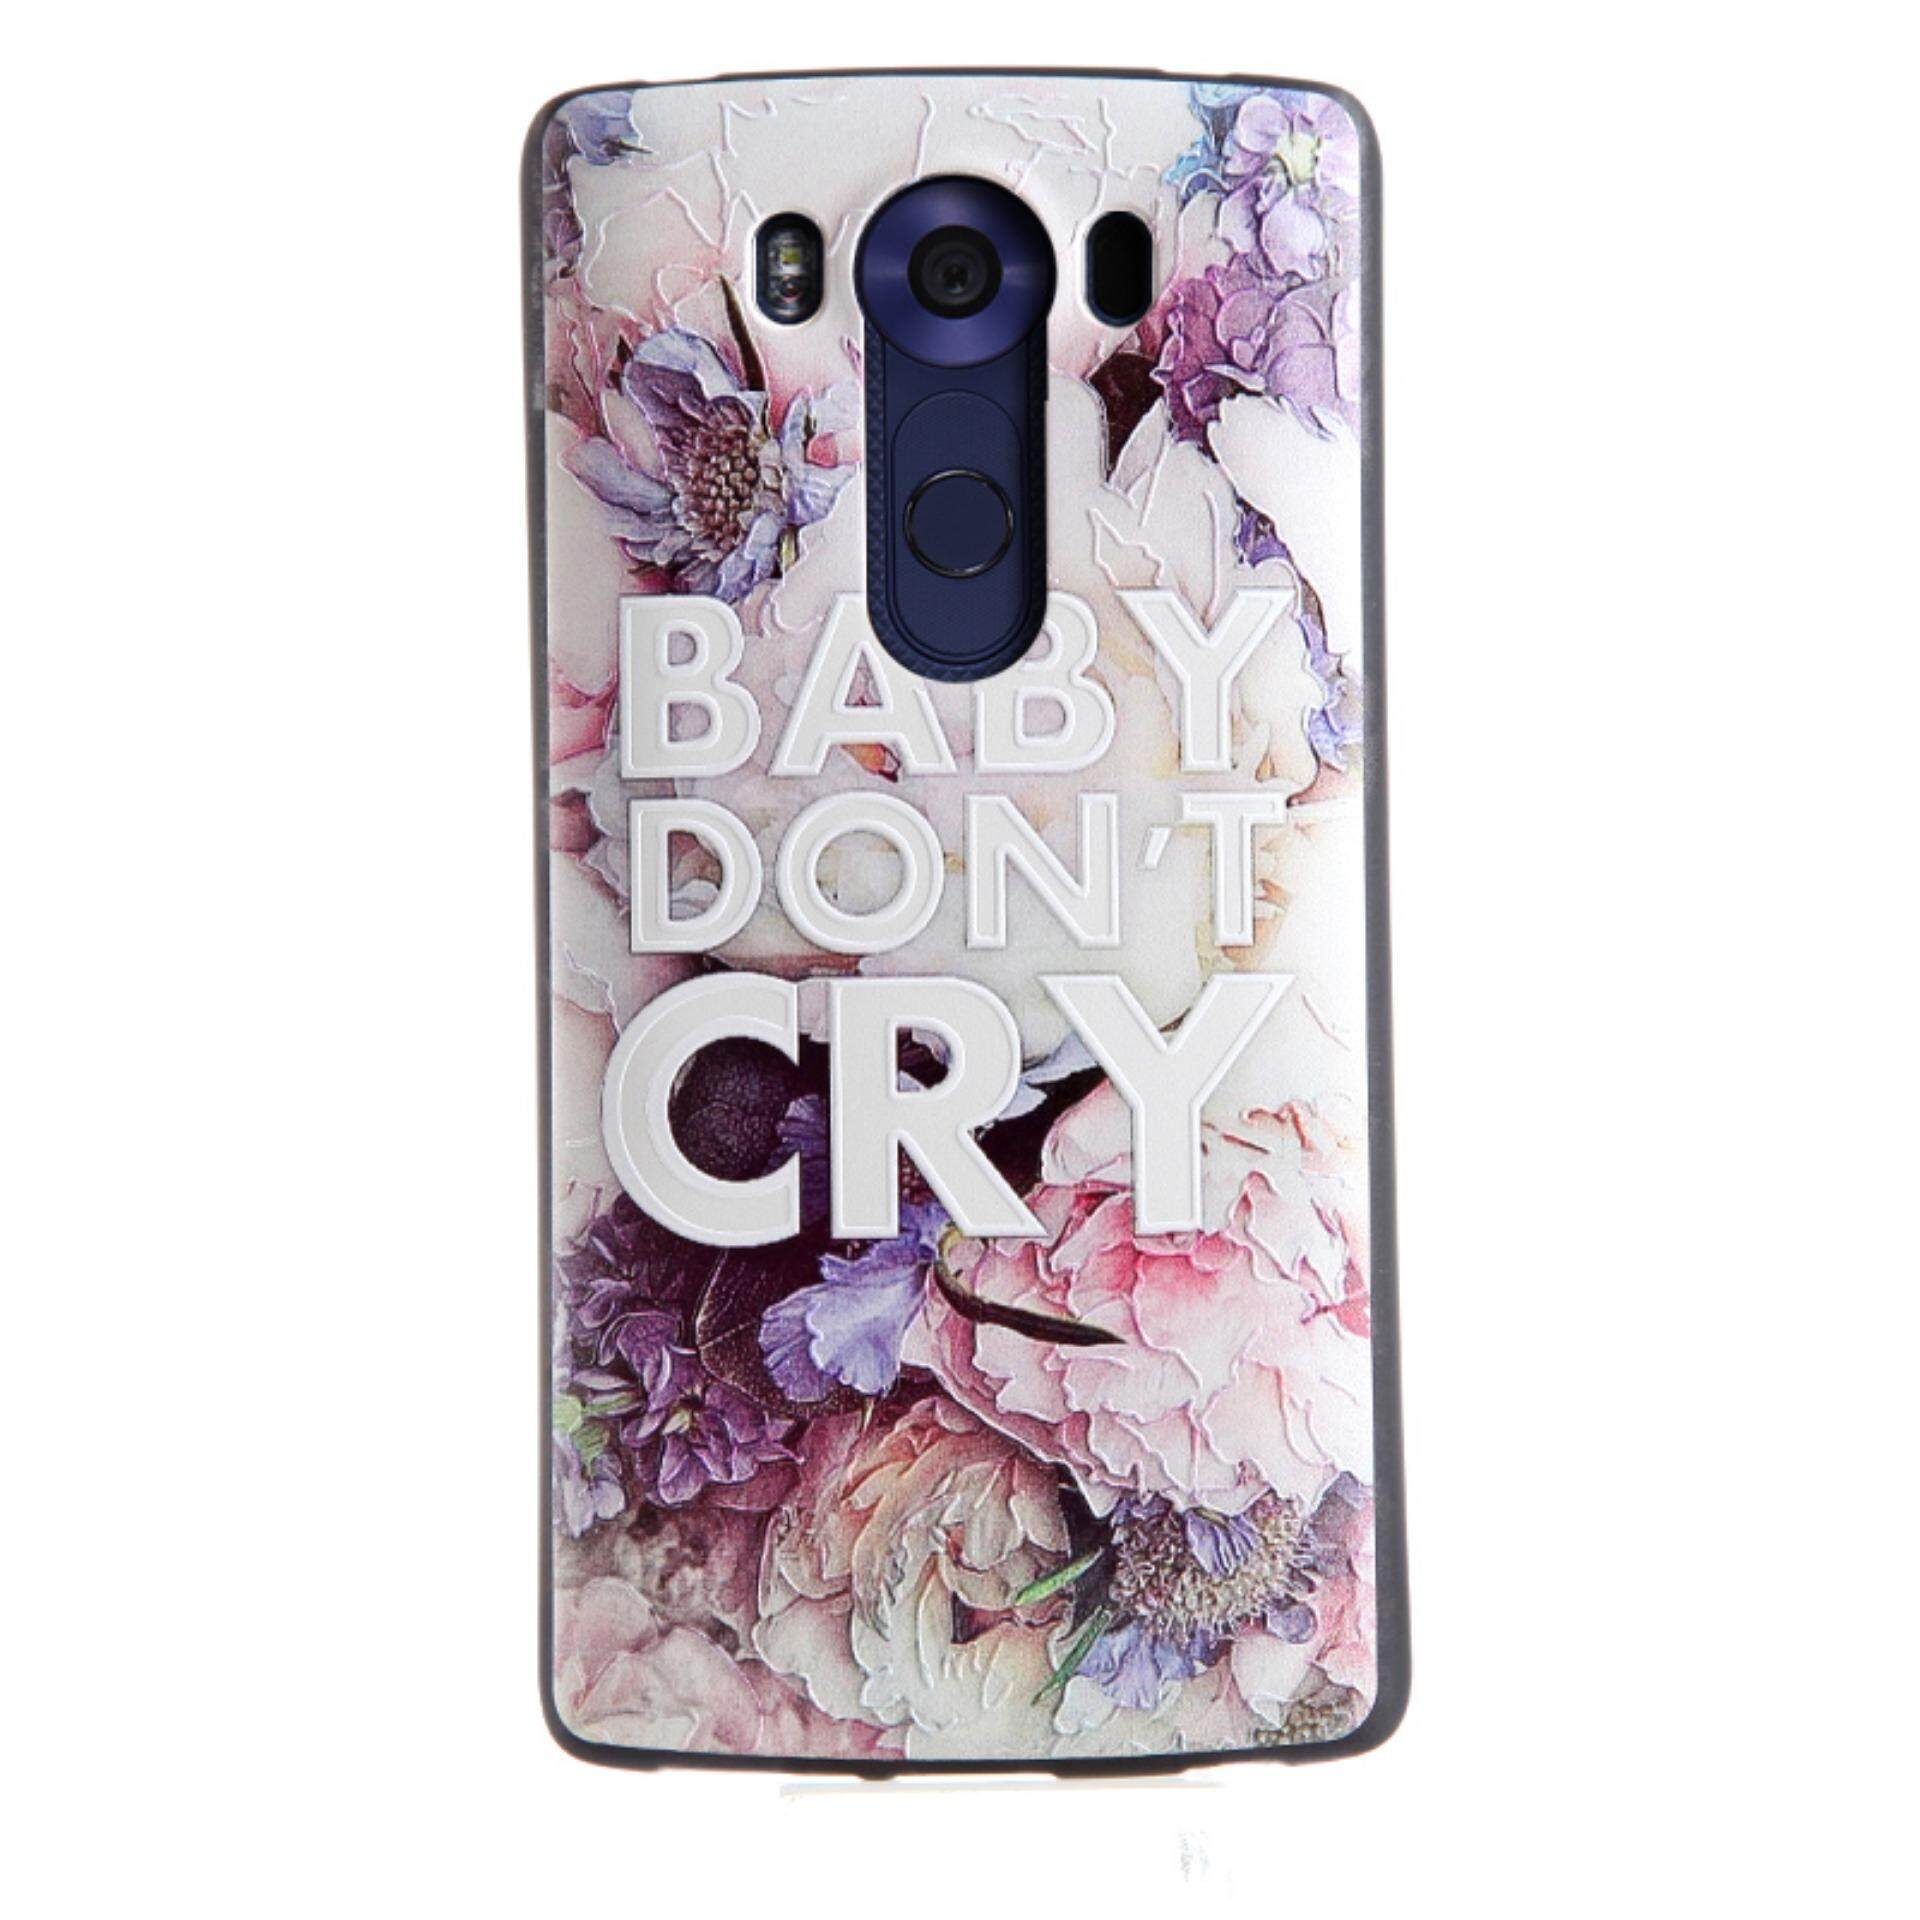 Bogdana for LG V10 Case Soft TPU 3D Painted Emboss Phone Case(Not super man)PHP269. PHP 269